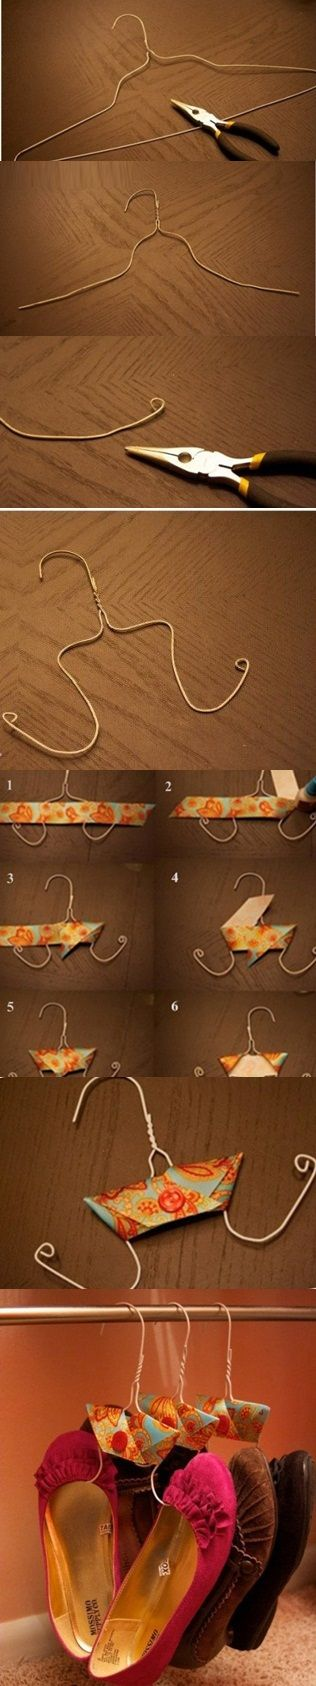 Shoe hangers...after working at a Dry-cleaners, I grew to DESPISE wire hangers. Finally, they have redeemed themselves.